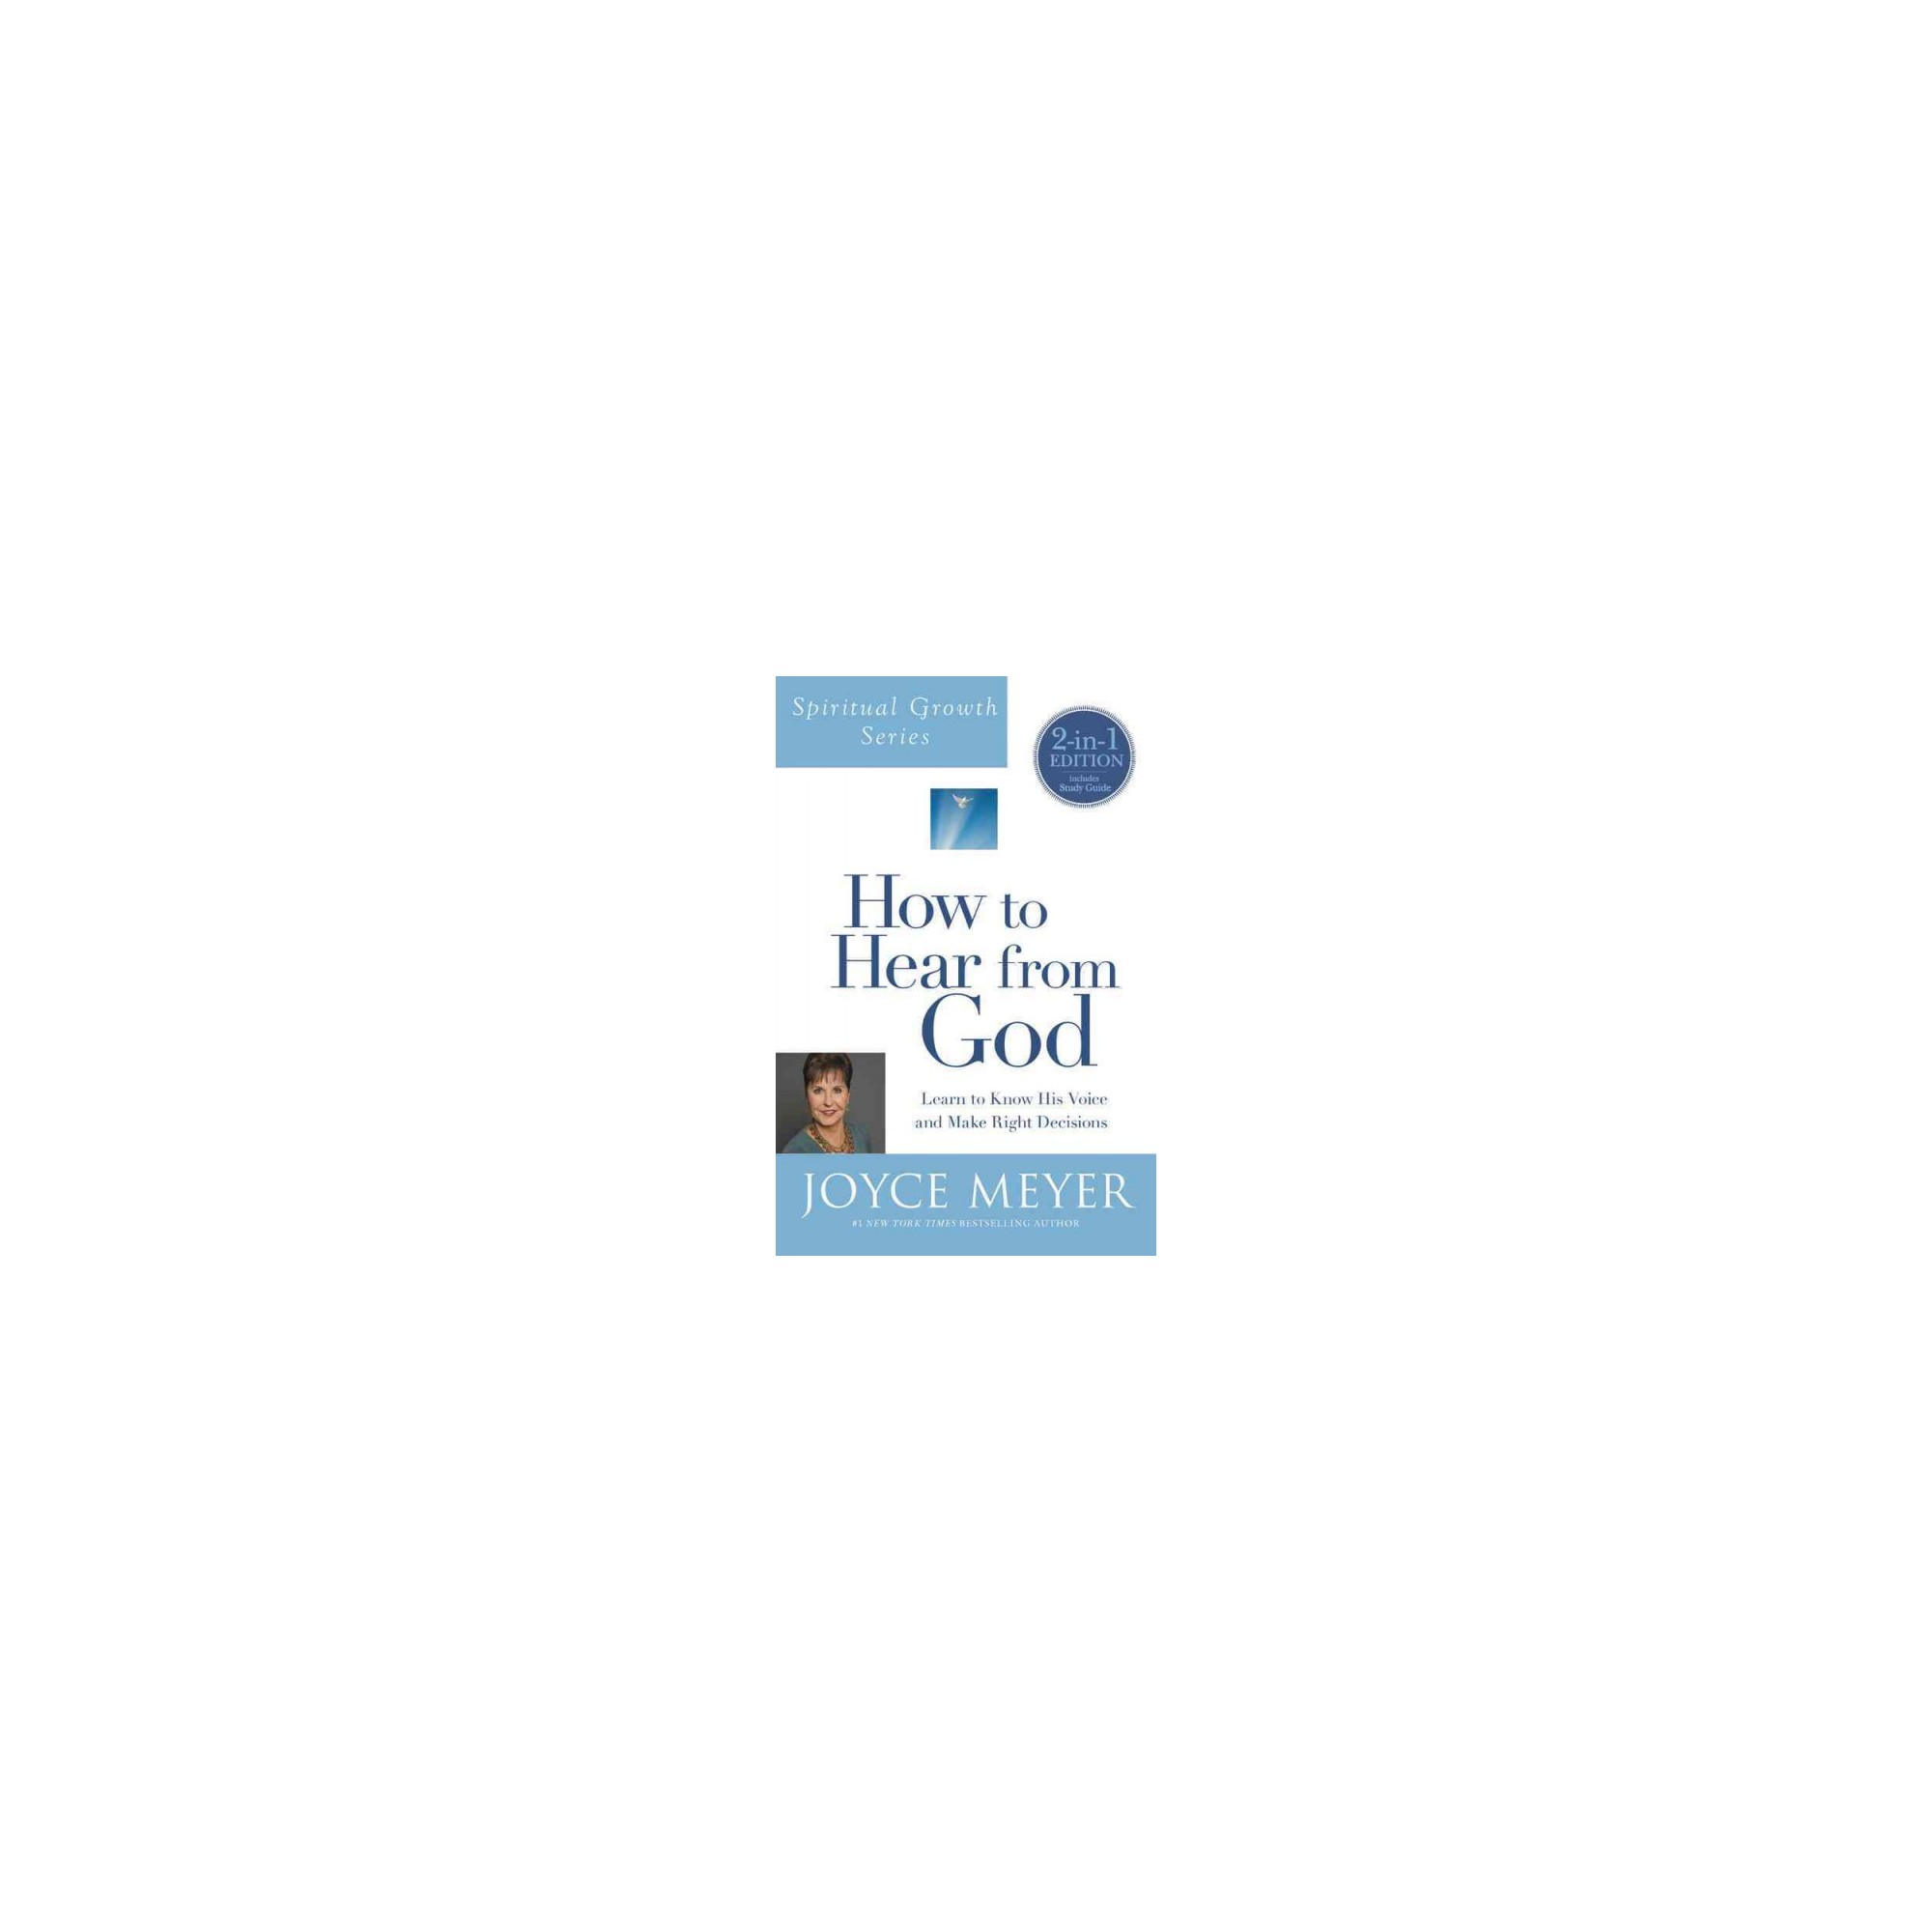 How to Hear from God : Learn to Know His Voice and Make Right Decisions, 2 in 1 Edition Includes Study